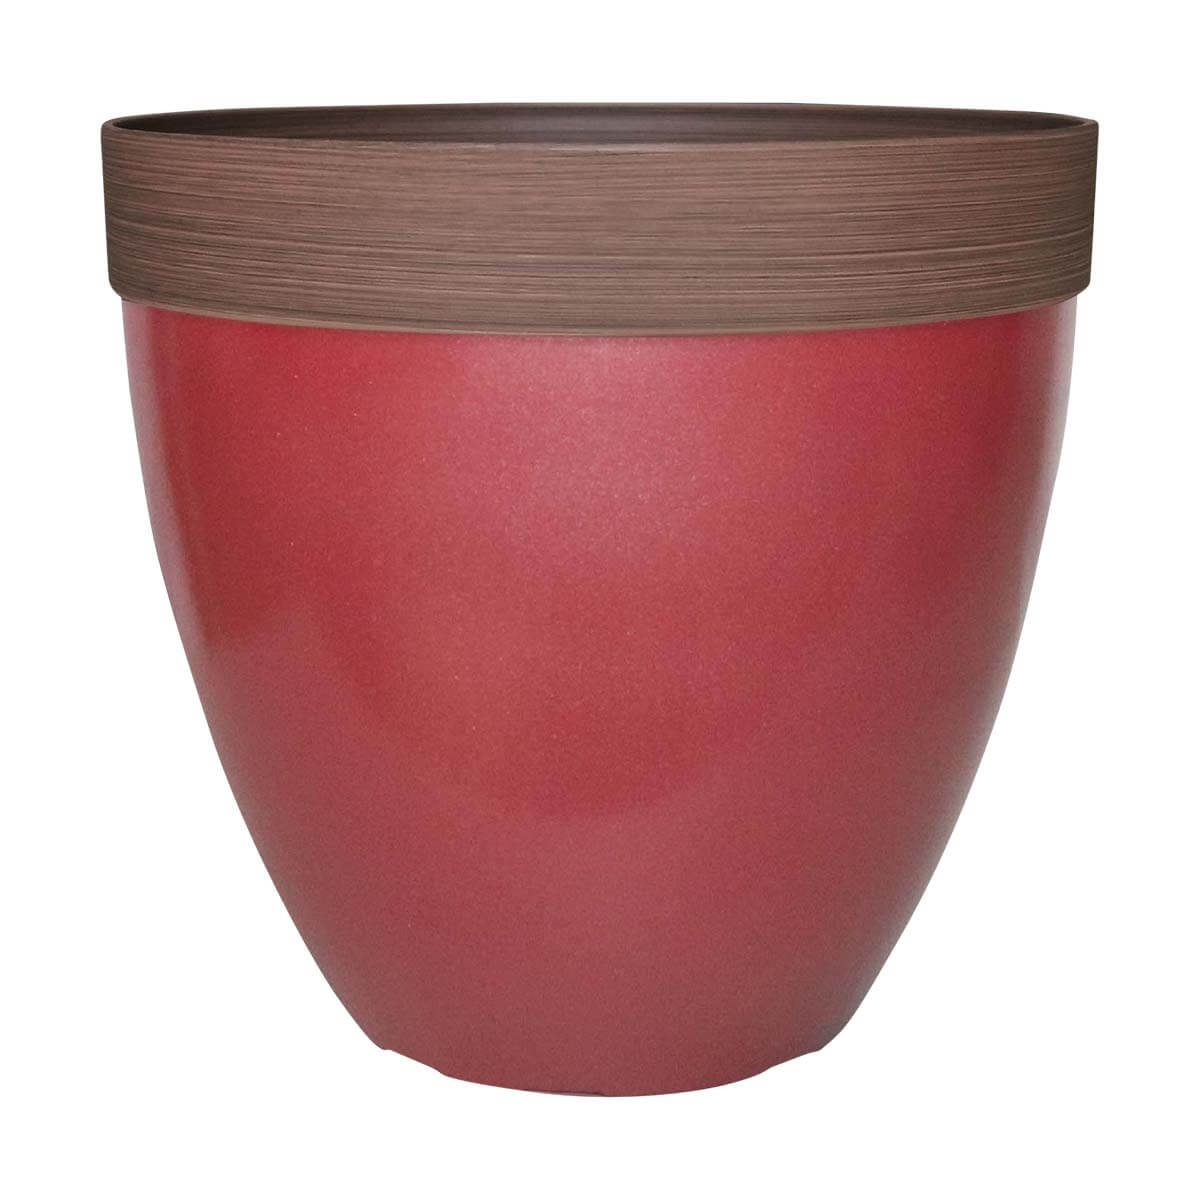 Planter - Red - 15 in